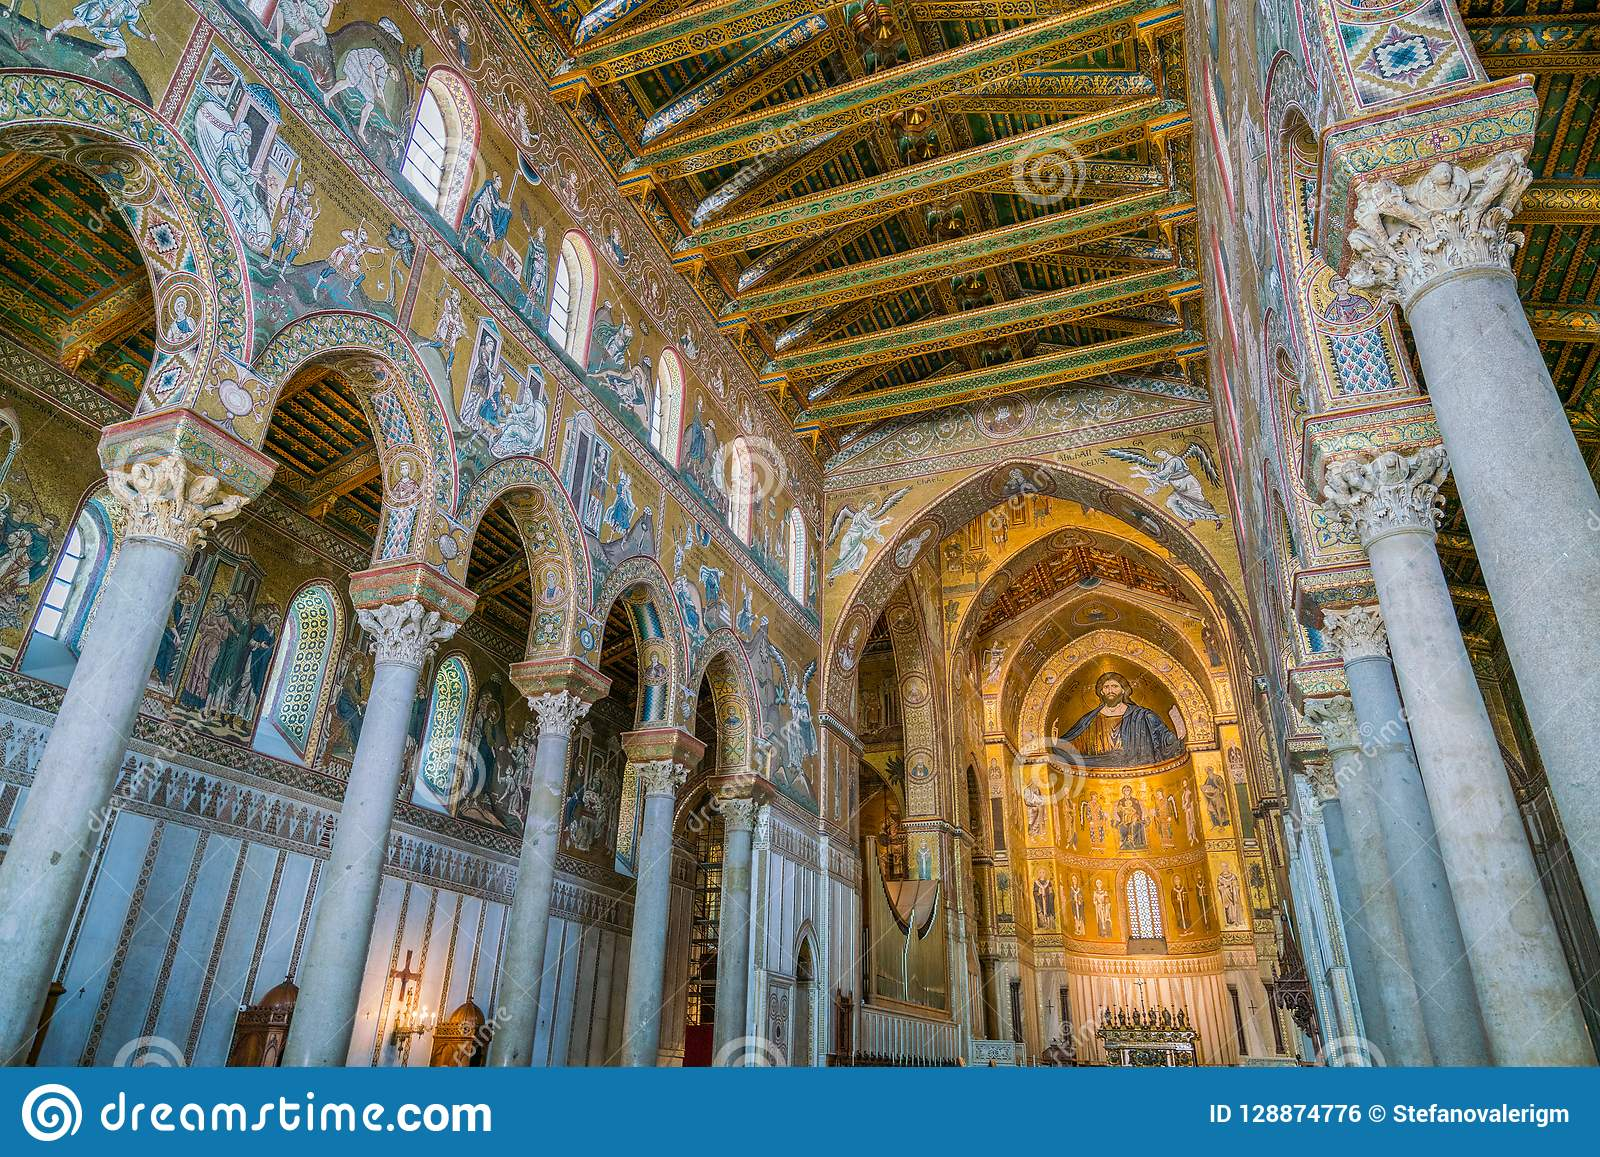 Indoor sight in the Cathedral of Monreale, in the province of Palermo. Sicily, southern Italy.